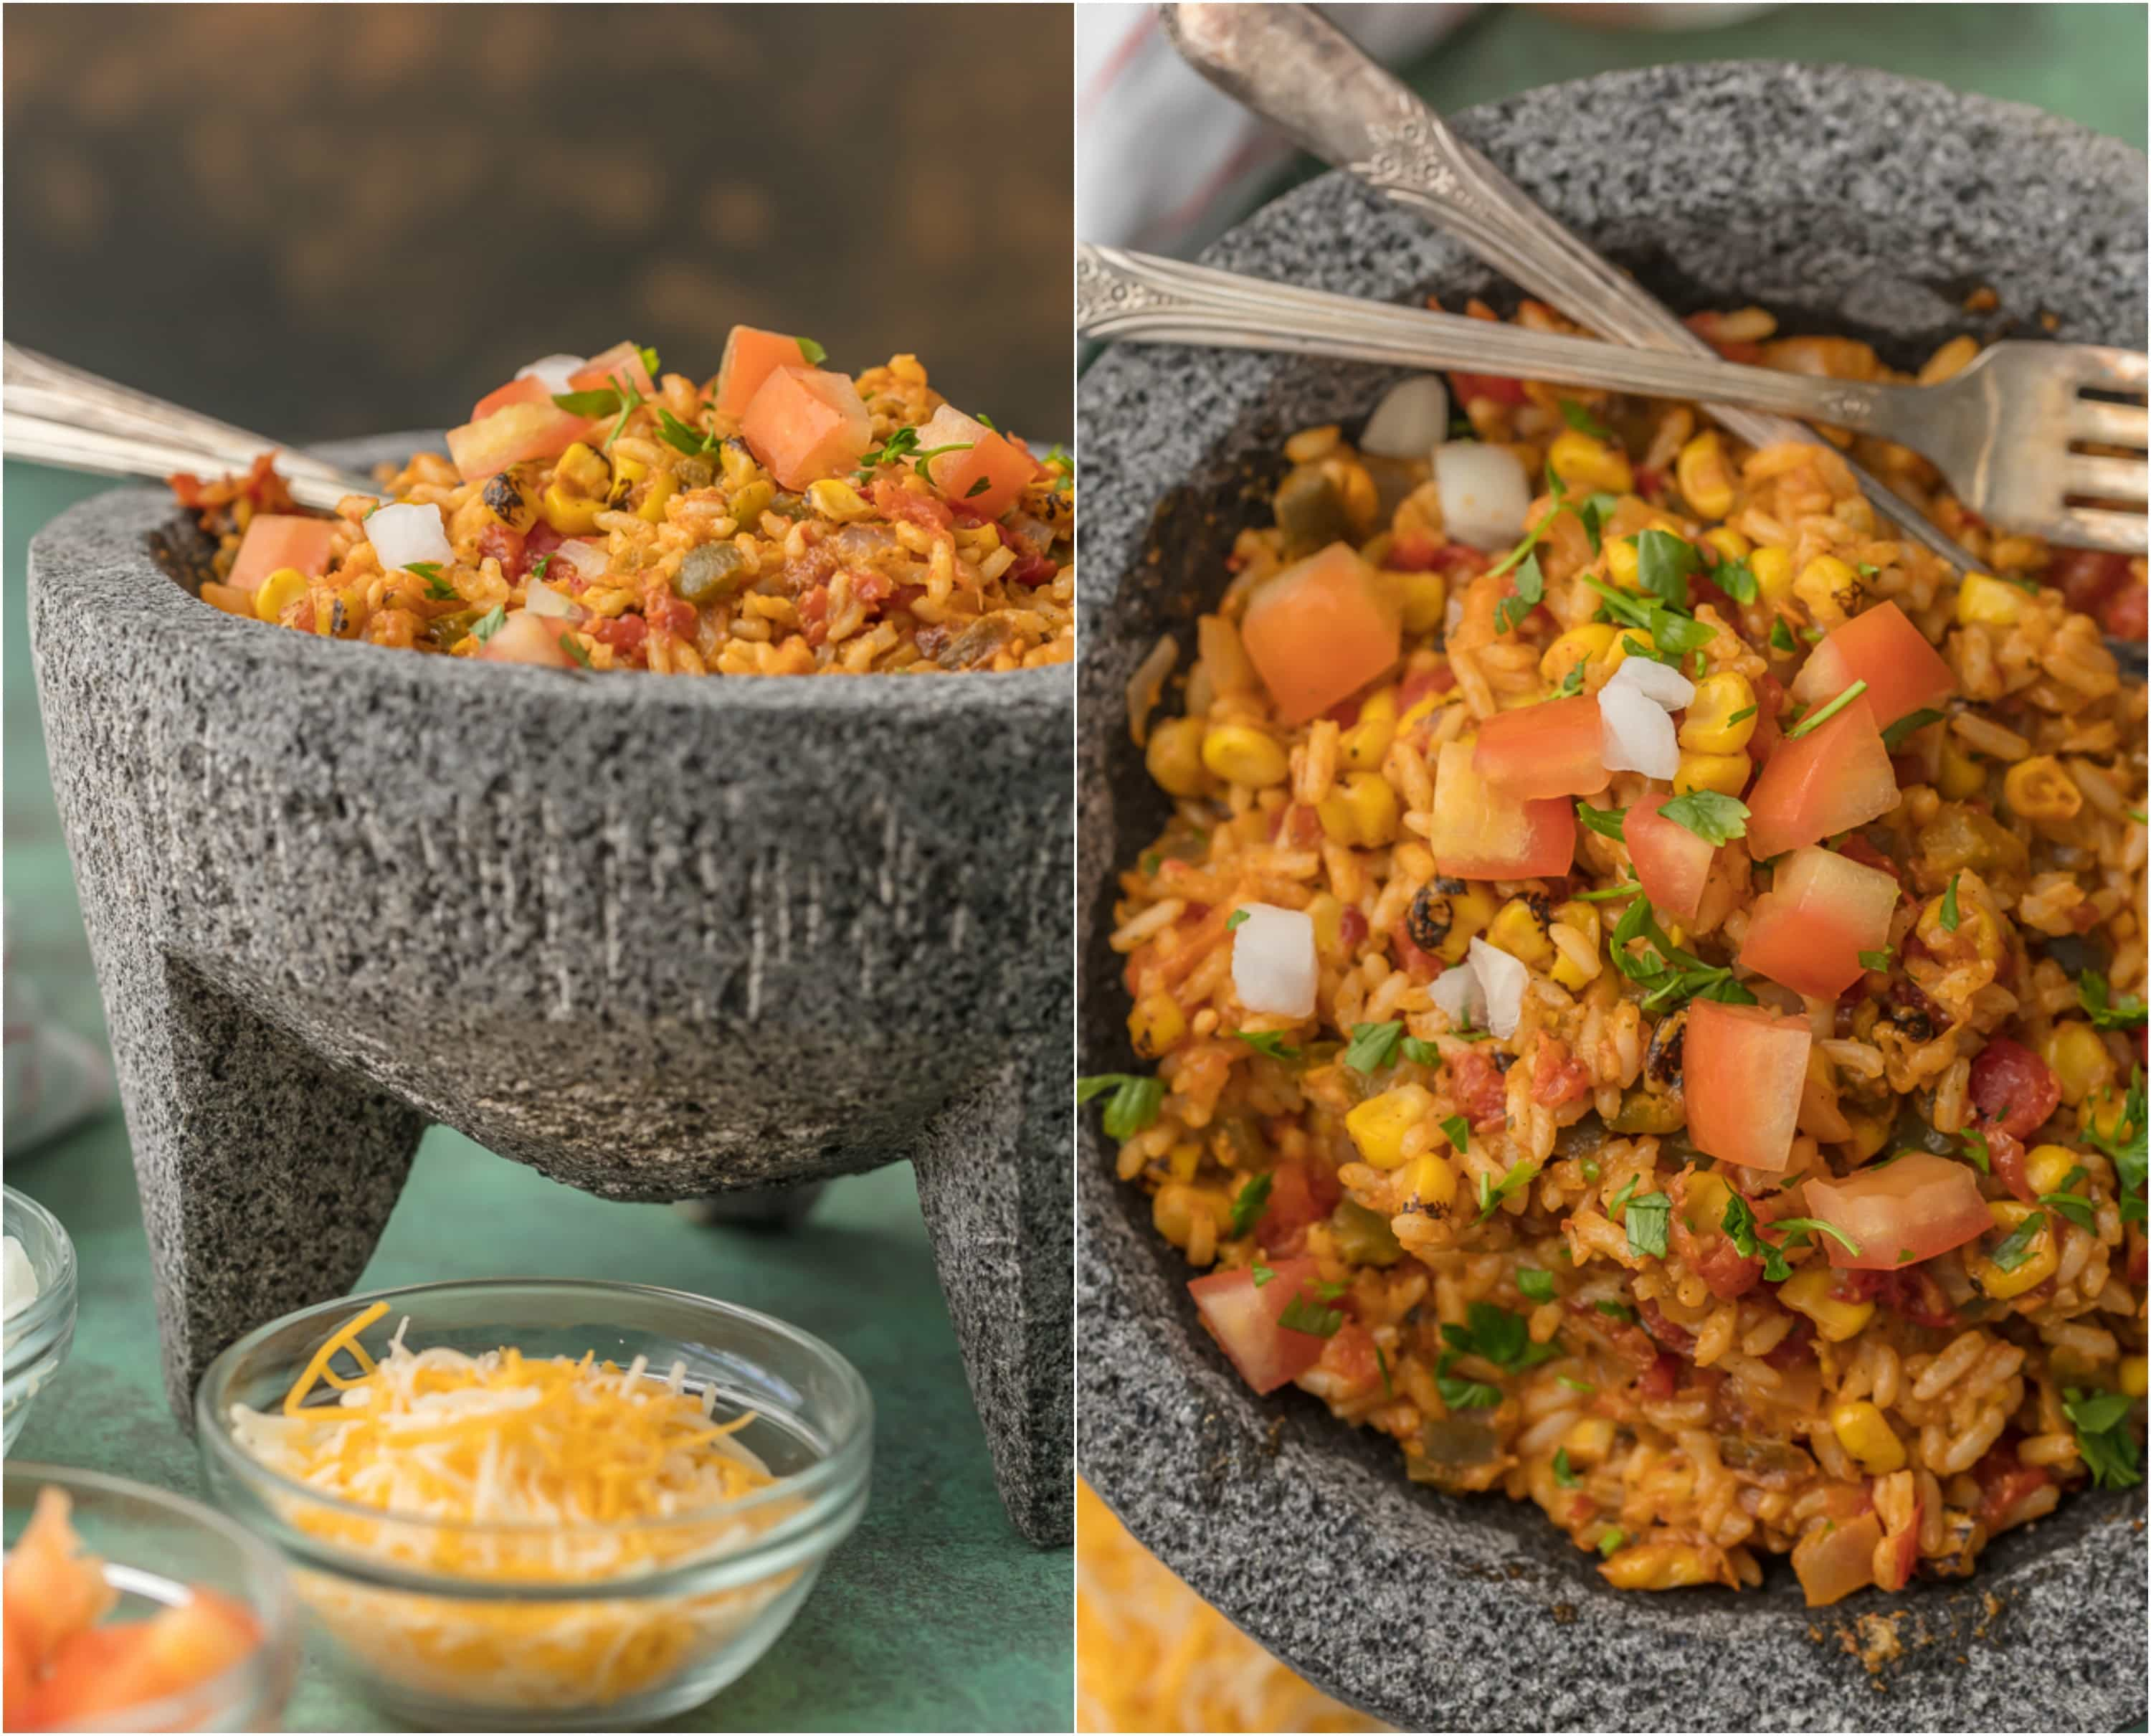 This EASY CHEESY TEX MEX RICE is our favorite Mexican side dish! We are obsessed with this cheesy rice loaded with all the best ingredients.